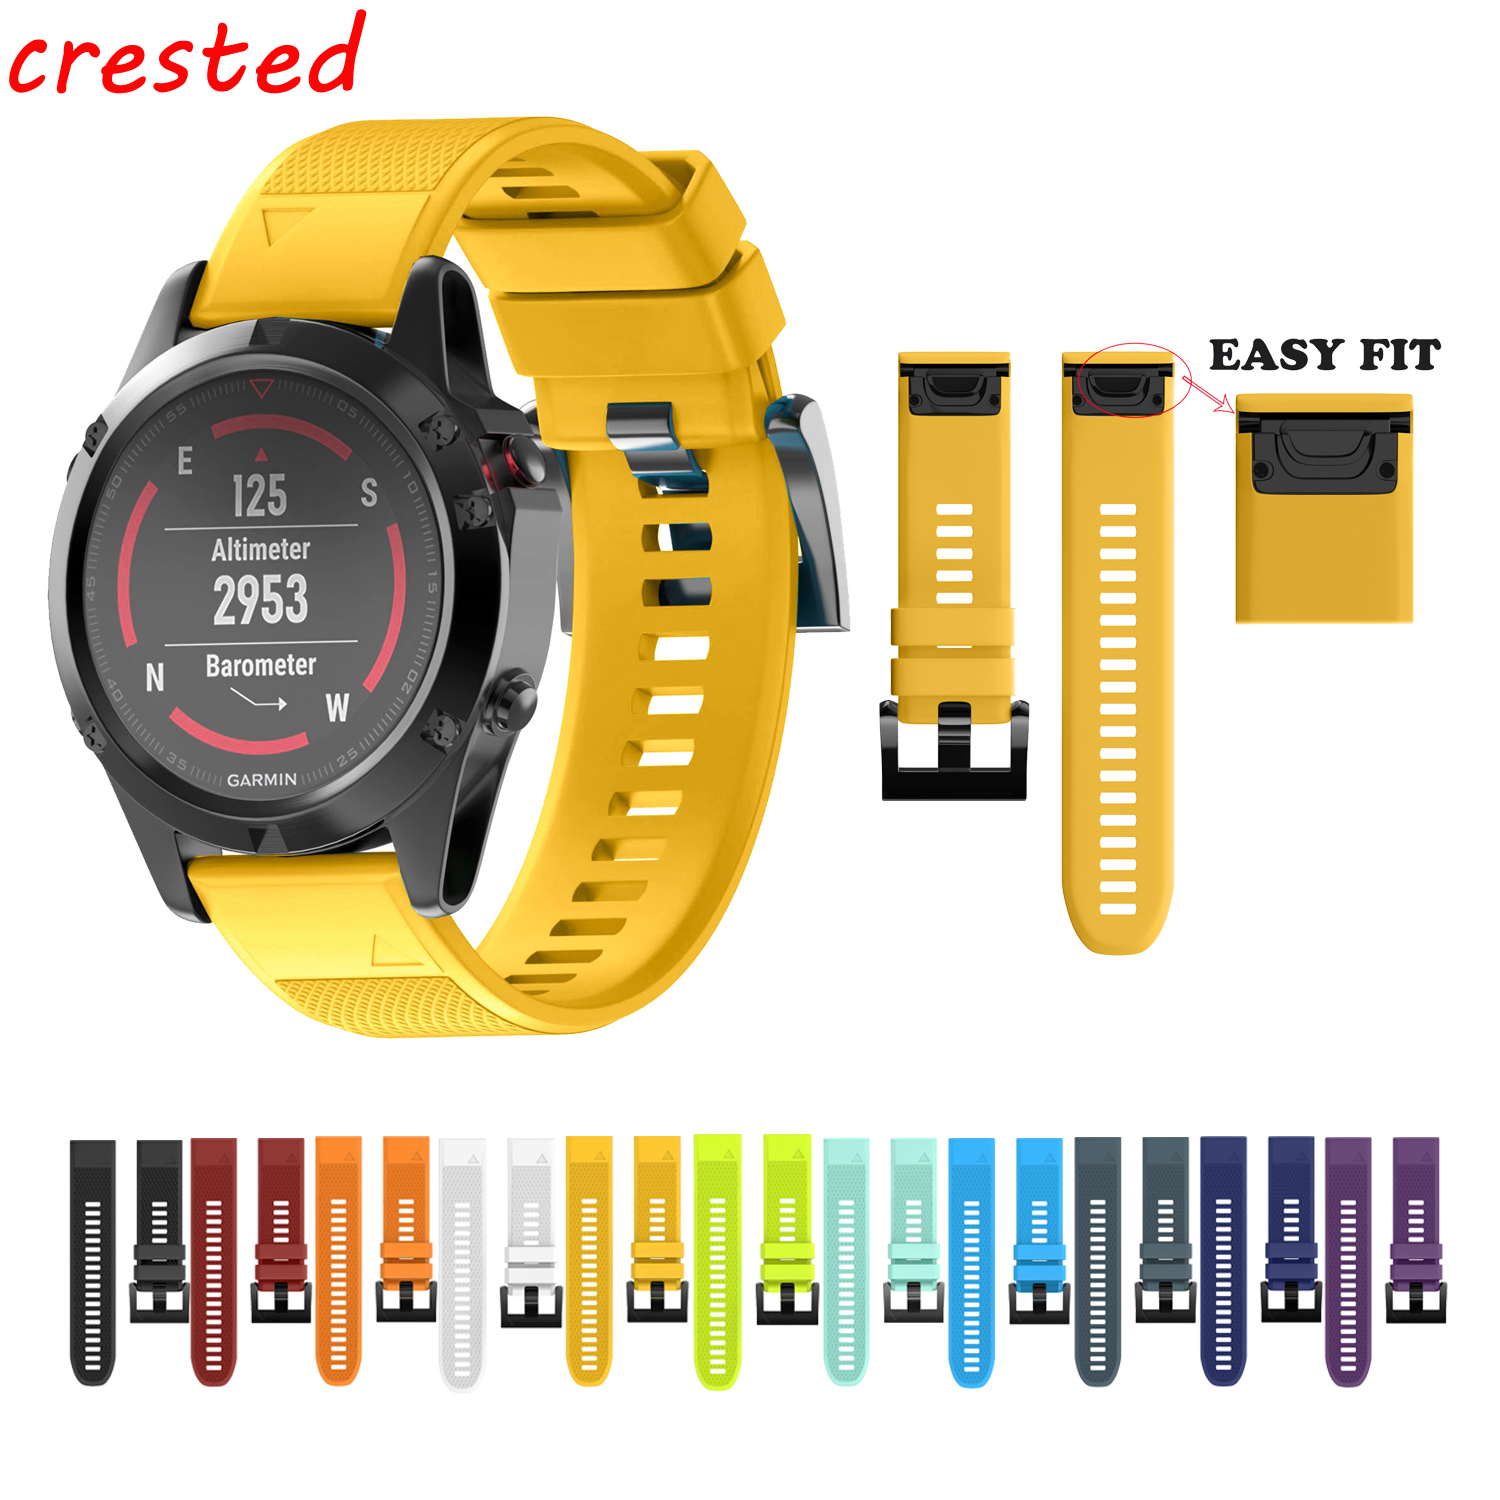 CRESTED silicone watch strap for Garmin Fenix 5 band GPS Watches Replacement band Silicagel Wrist Band Bracelet 22mm width nylon strap for garmin fenix 5 band outdoor sport watchband with quick fit for garmin fenix 5 replace wrist band